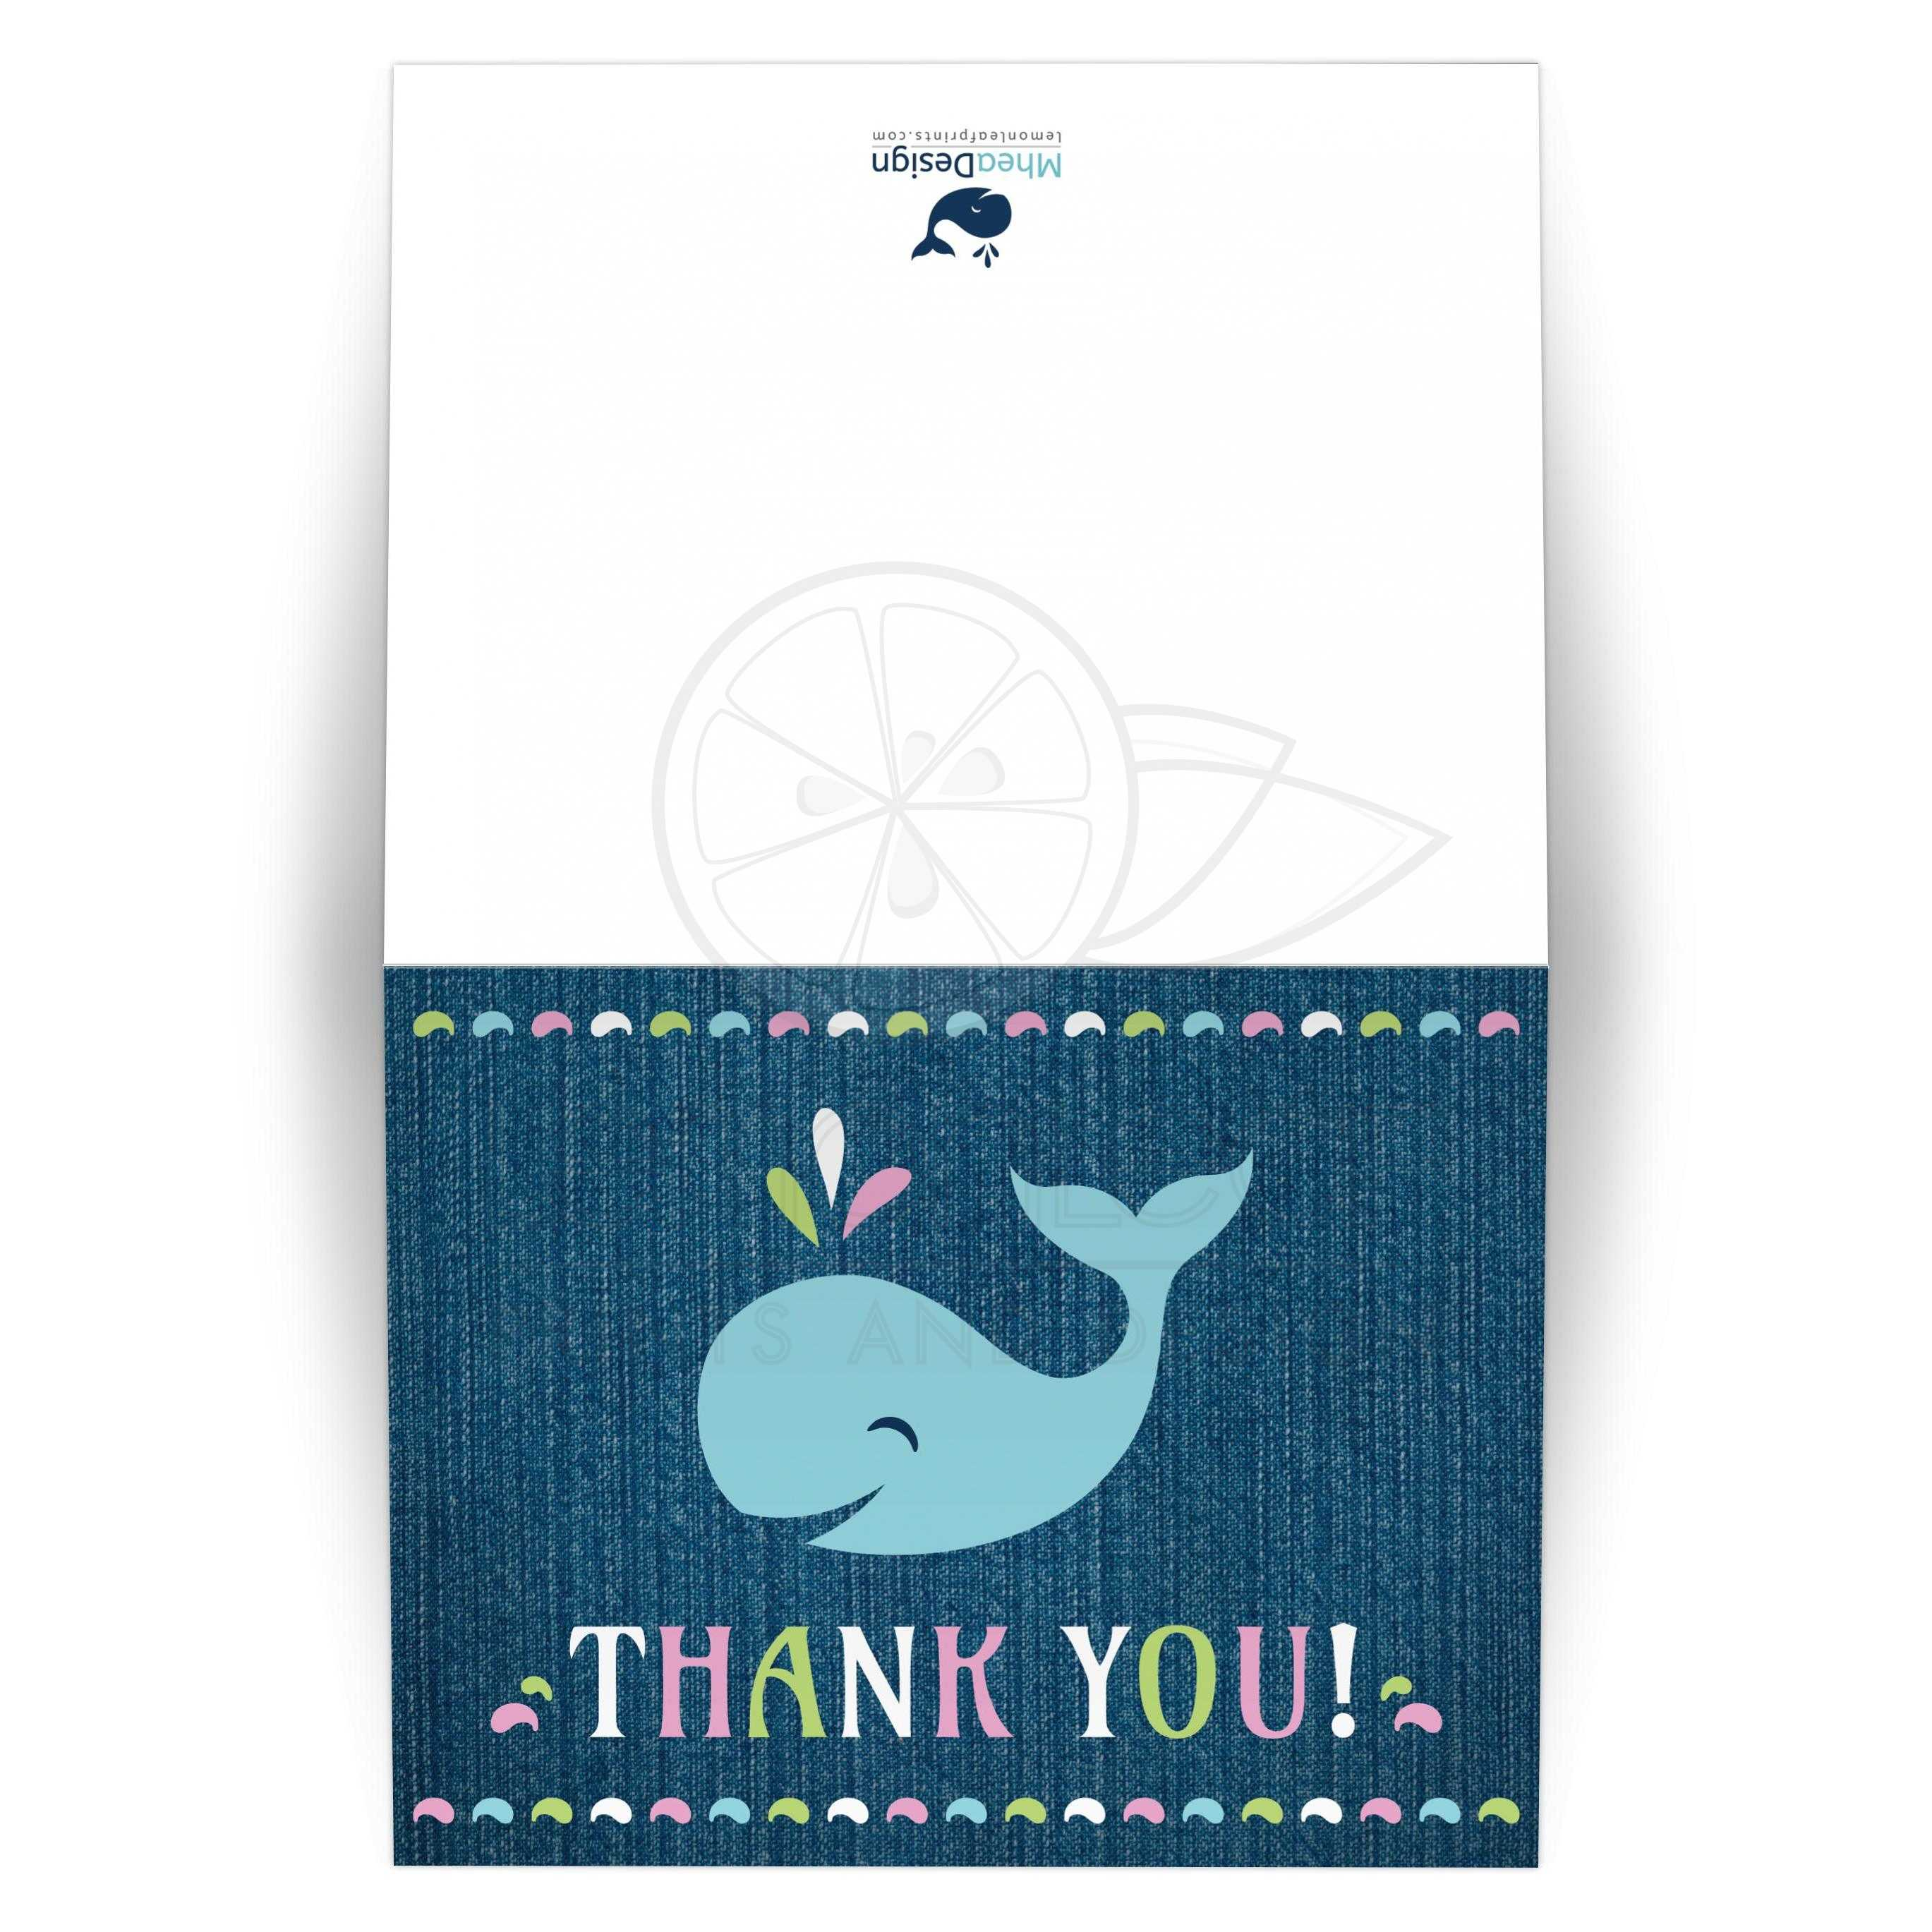 Cute whale on dark blue denim thank you card | Under the sea theme